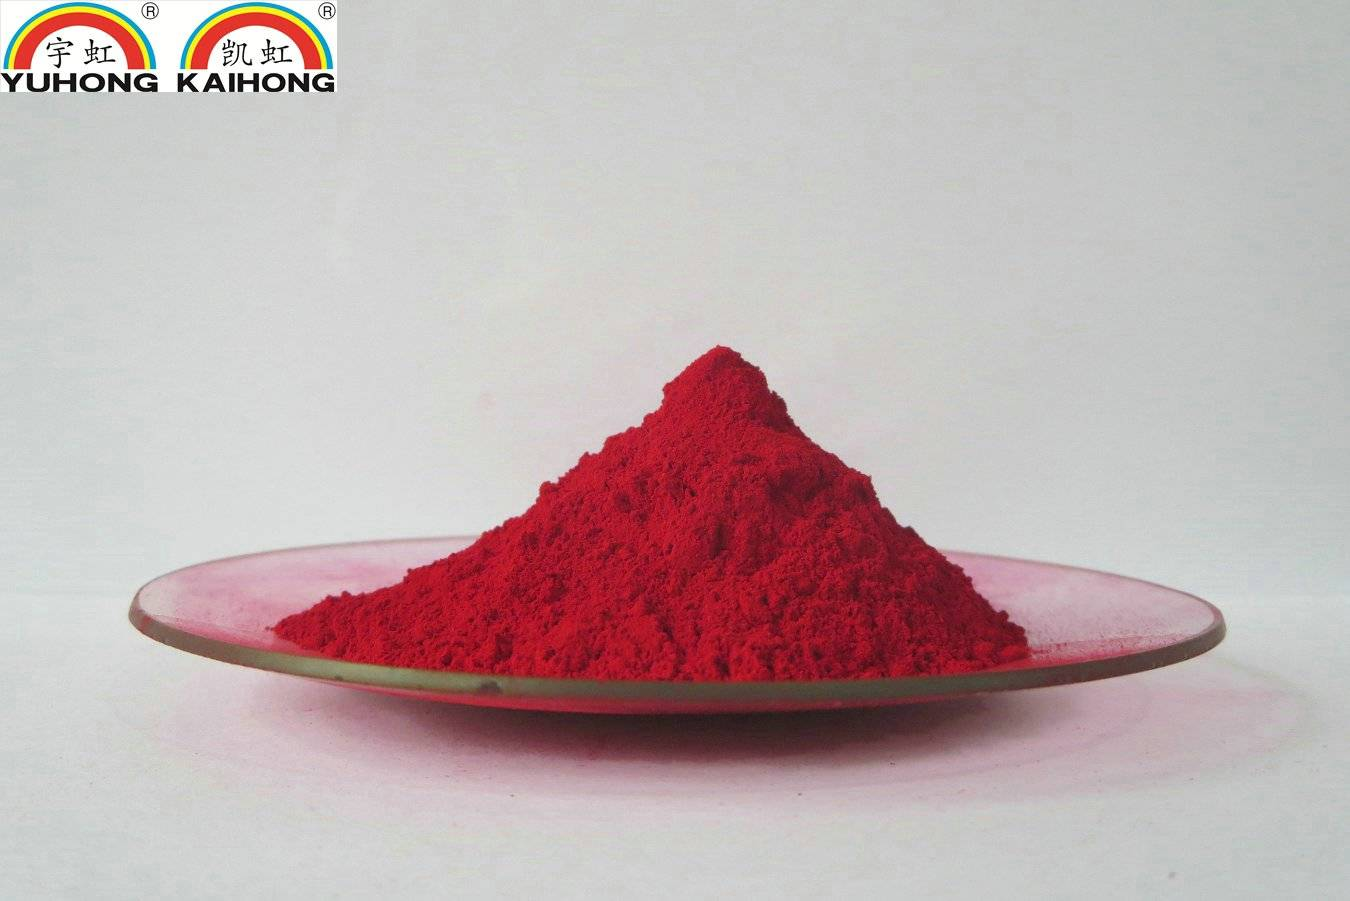 Pigment Red 170 for ink(water based ink). Permanent Red F3RK,Permanent Red F5RK, P. R. 170, YHR17001